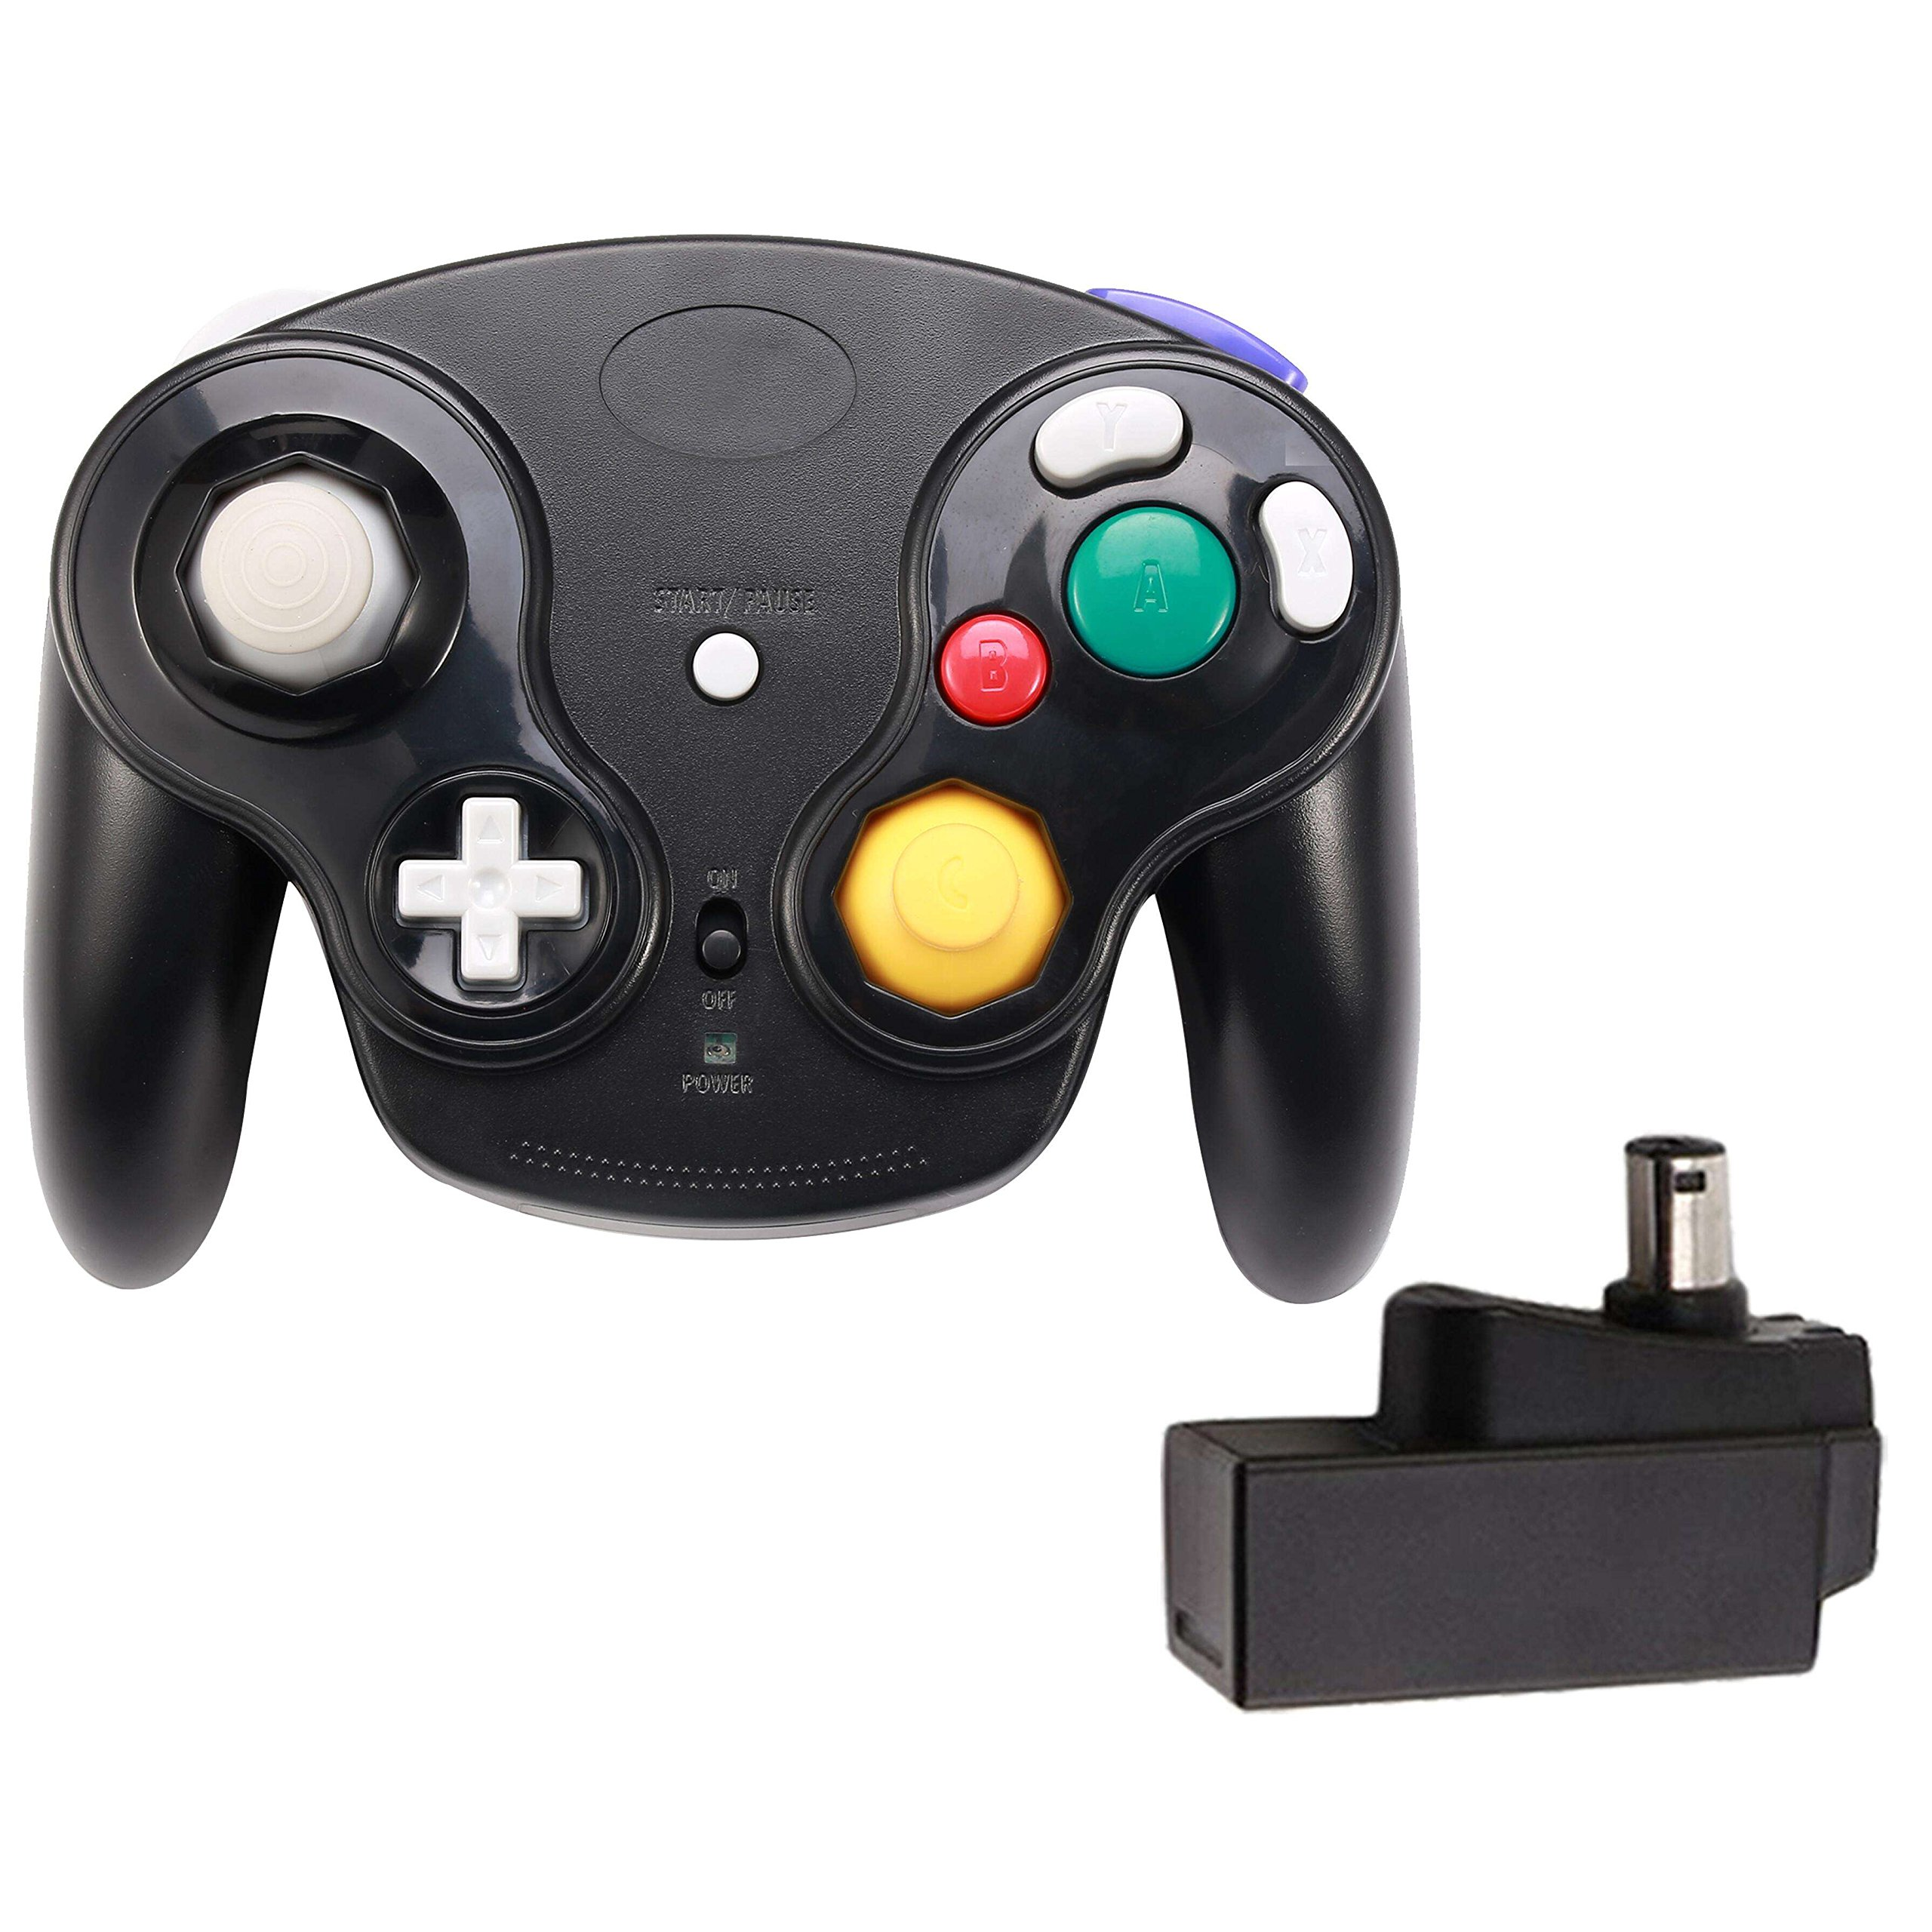 Poulep 1 Packs Classic 2.4G Wireless Controller Upgraded Gamepad with Receiver Adapter for Nintendo Wii U Gamecube NGC GC (Black2)